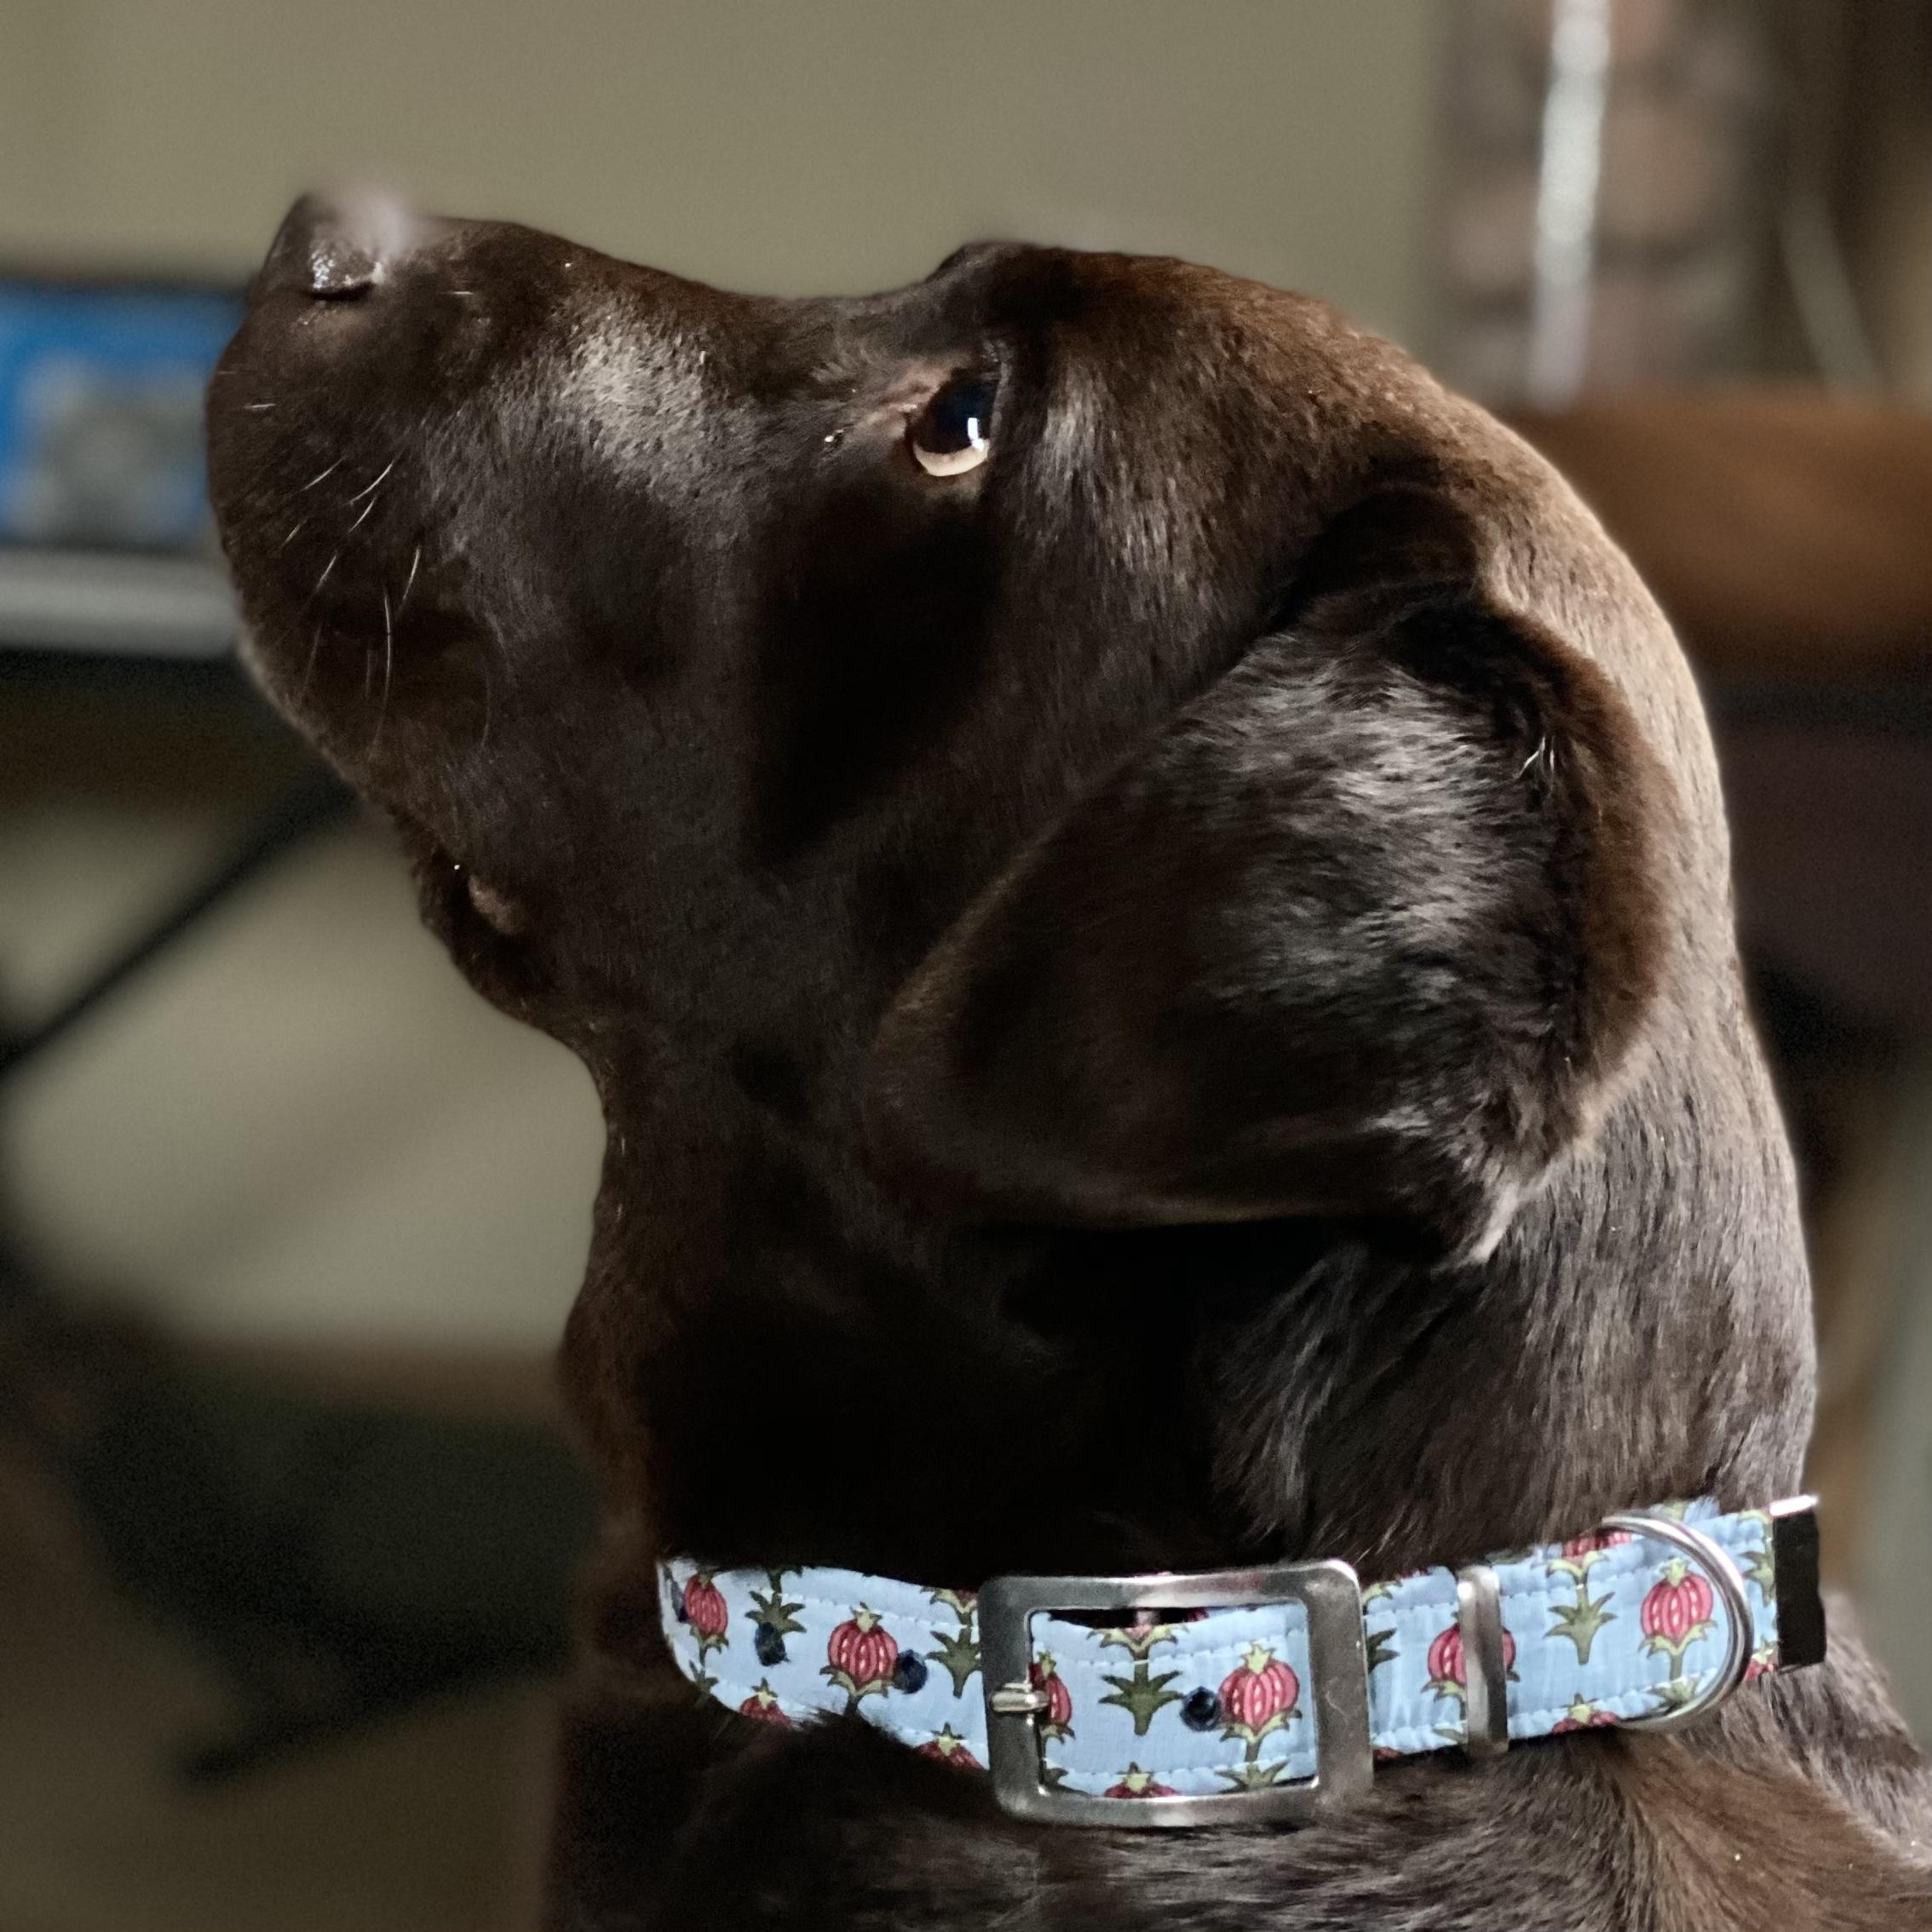 chocolate labrador wearing a light blue floral pattern dog collar